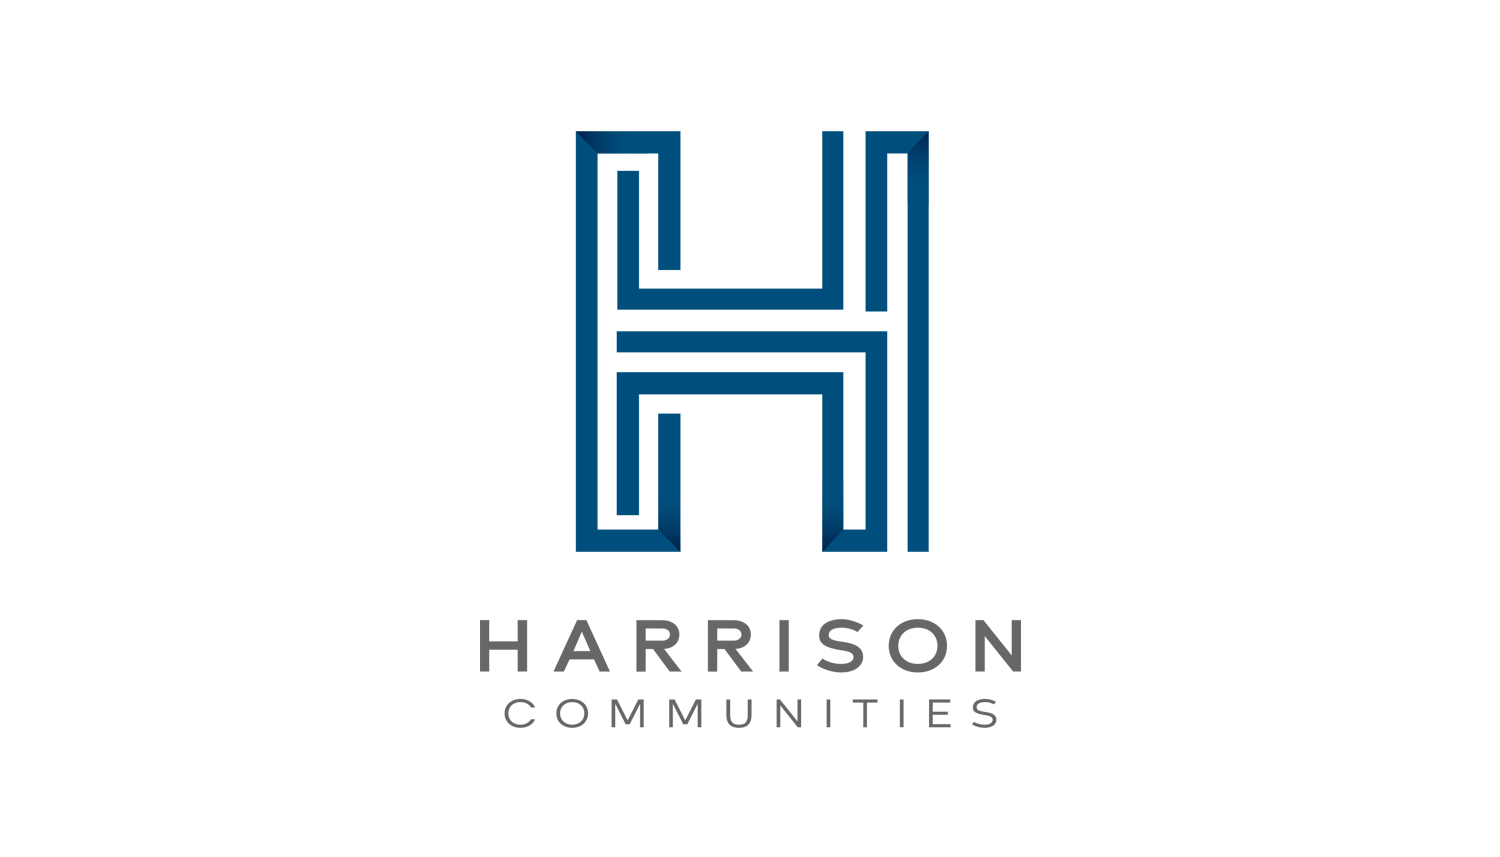 Harrison Communities